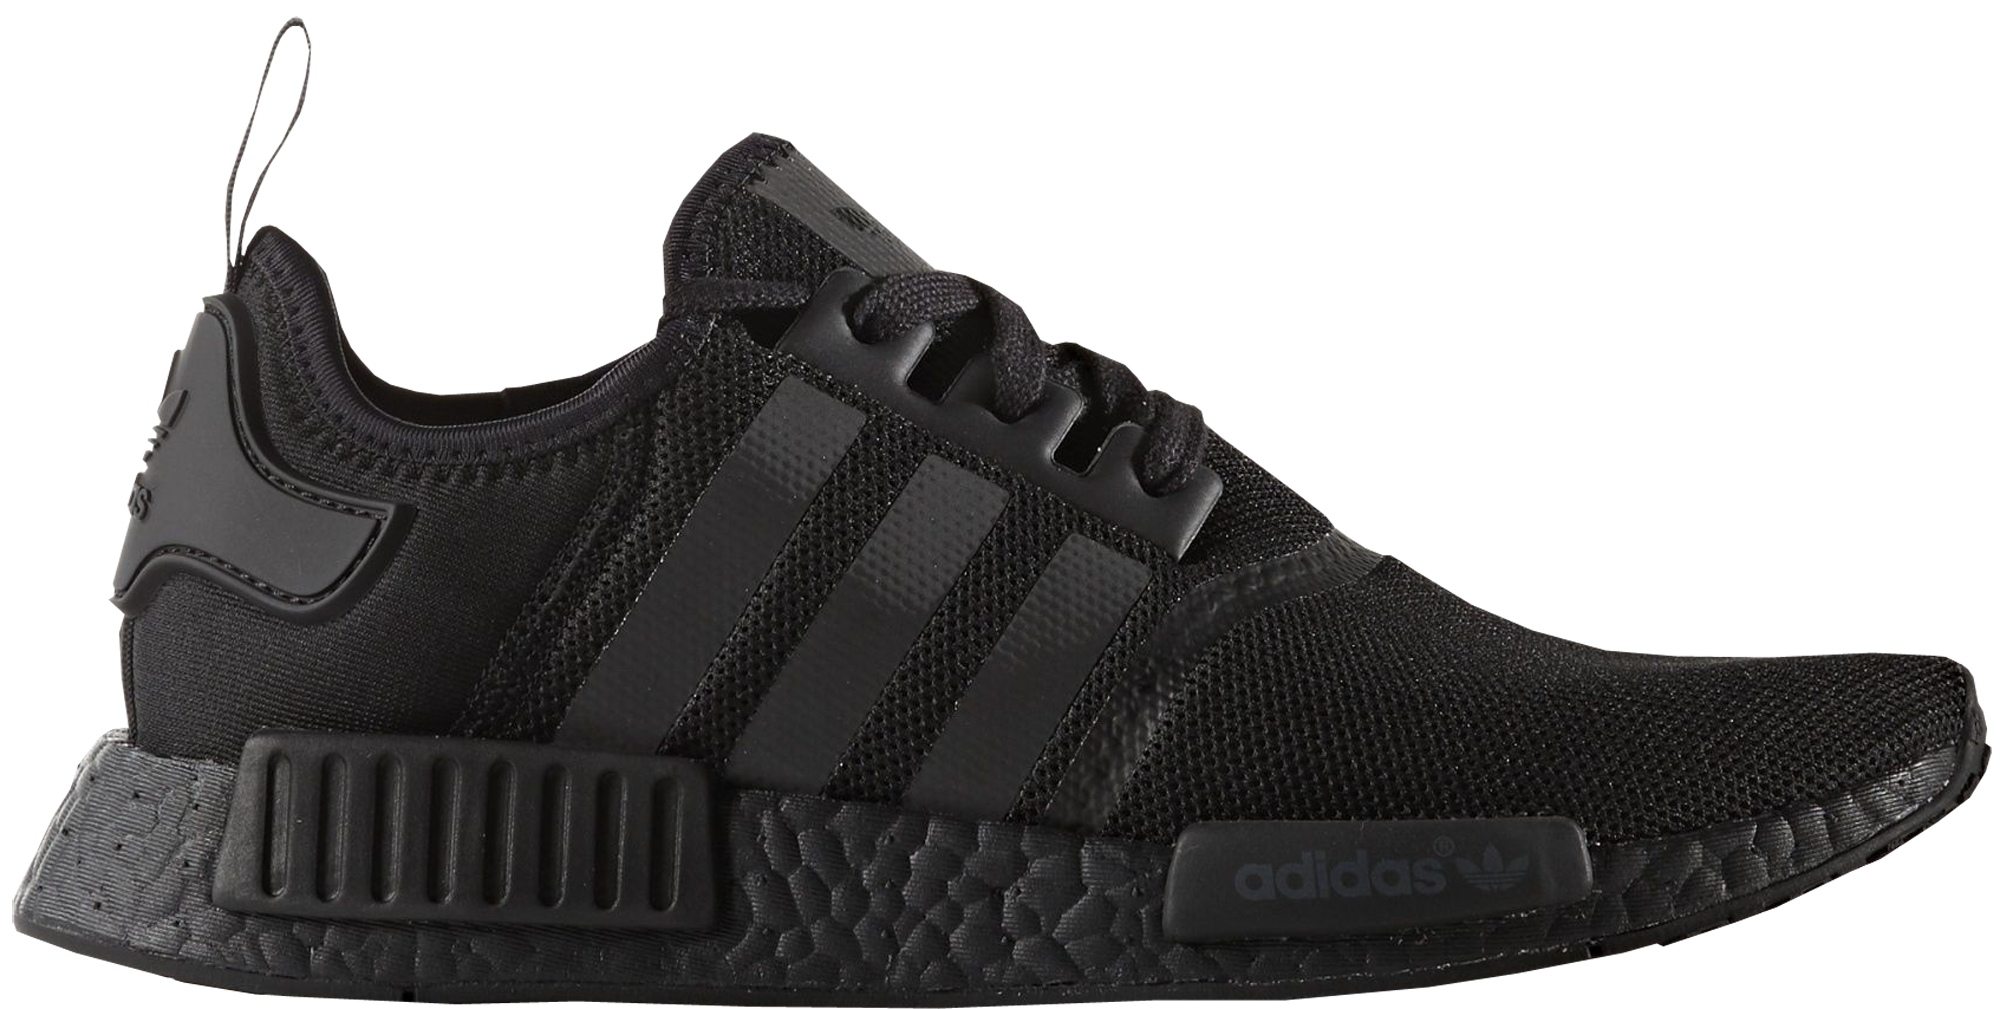 adidas nmd r1 triple black 2017. Black Bedroom Furniture Sets. Home Design Ideas